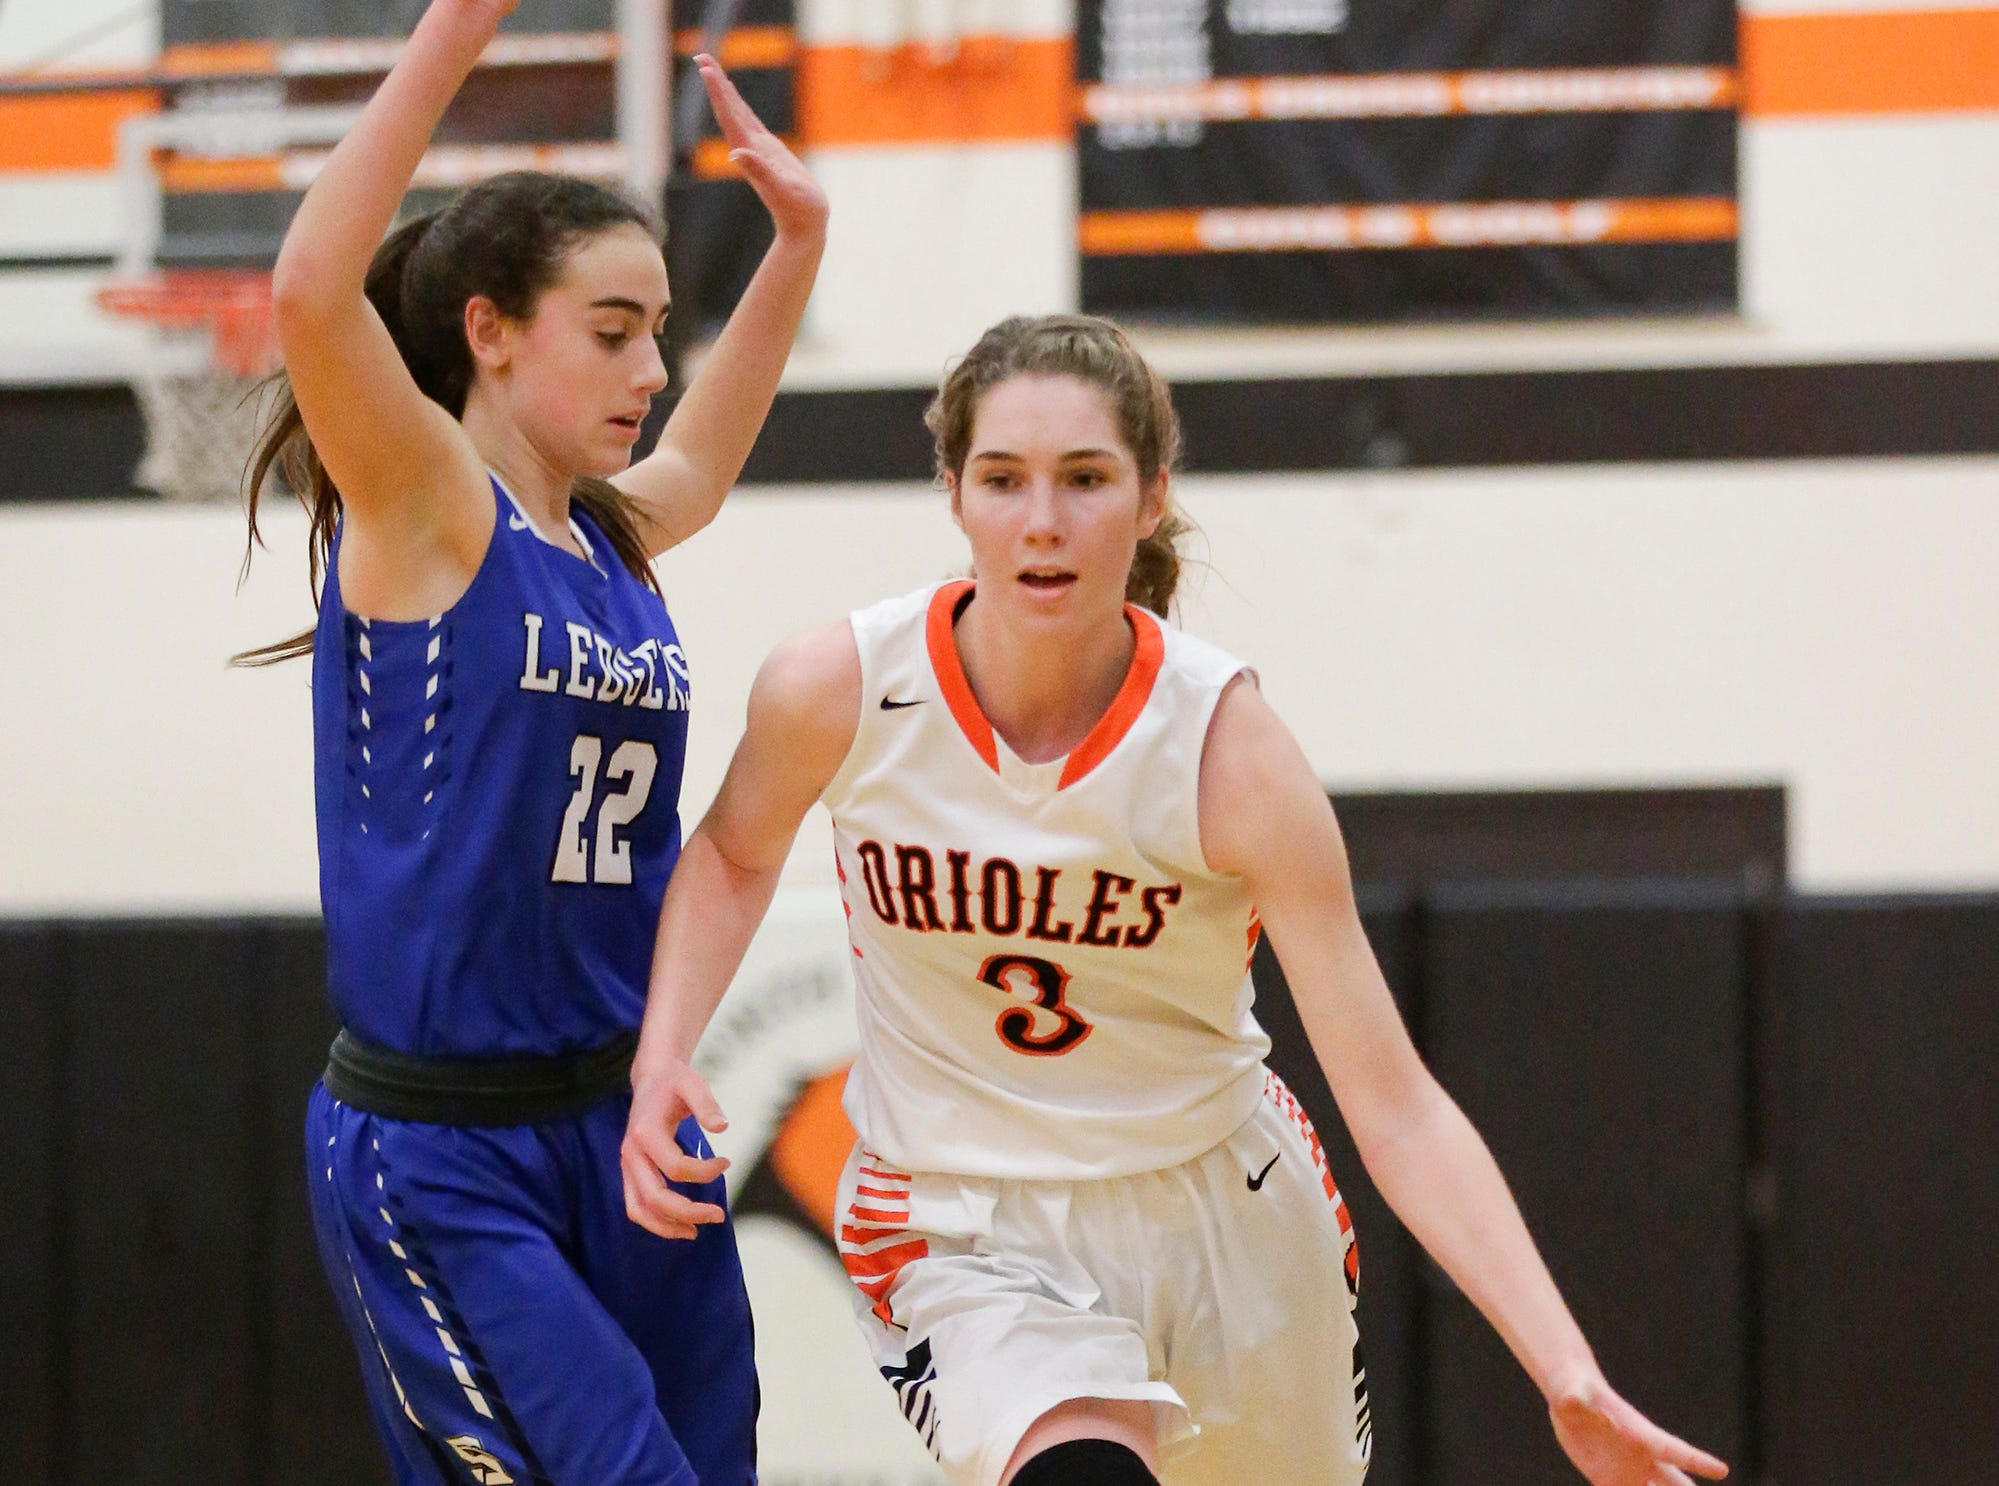 North Fond du Lac High School girls basketball's  Rebecca Kingsland moves past St. Mary's Springs Academy's Isabelle Coon during their game Friday, January 4, 2019 in North Fond du lac. Doug Raflik/USA TODAY NETWORK-Wisconsin